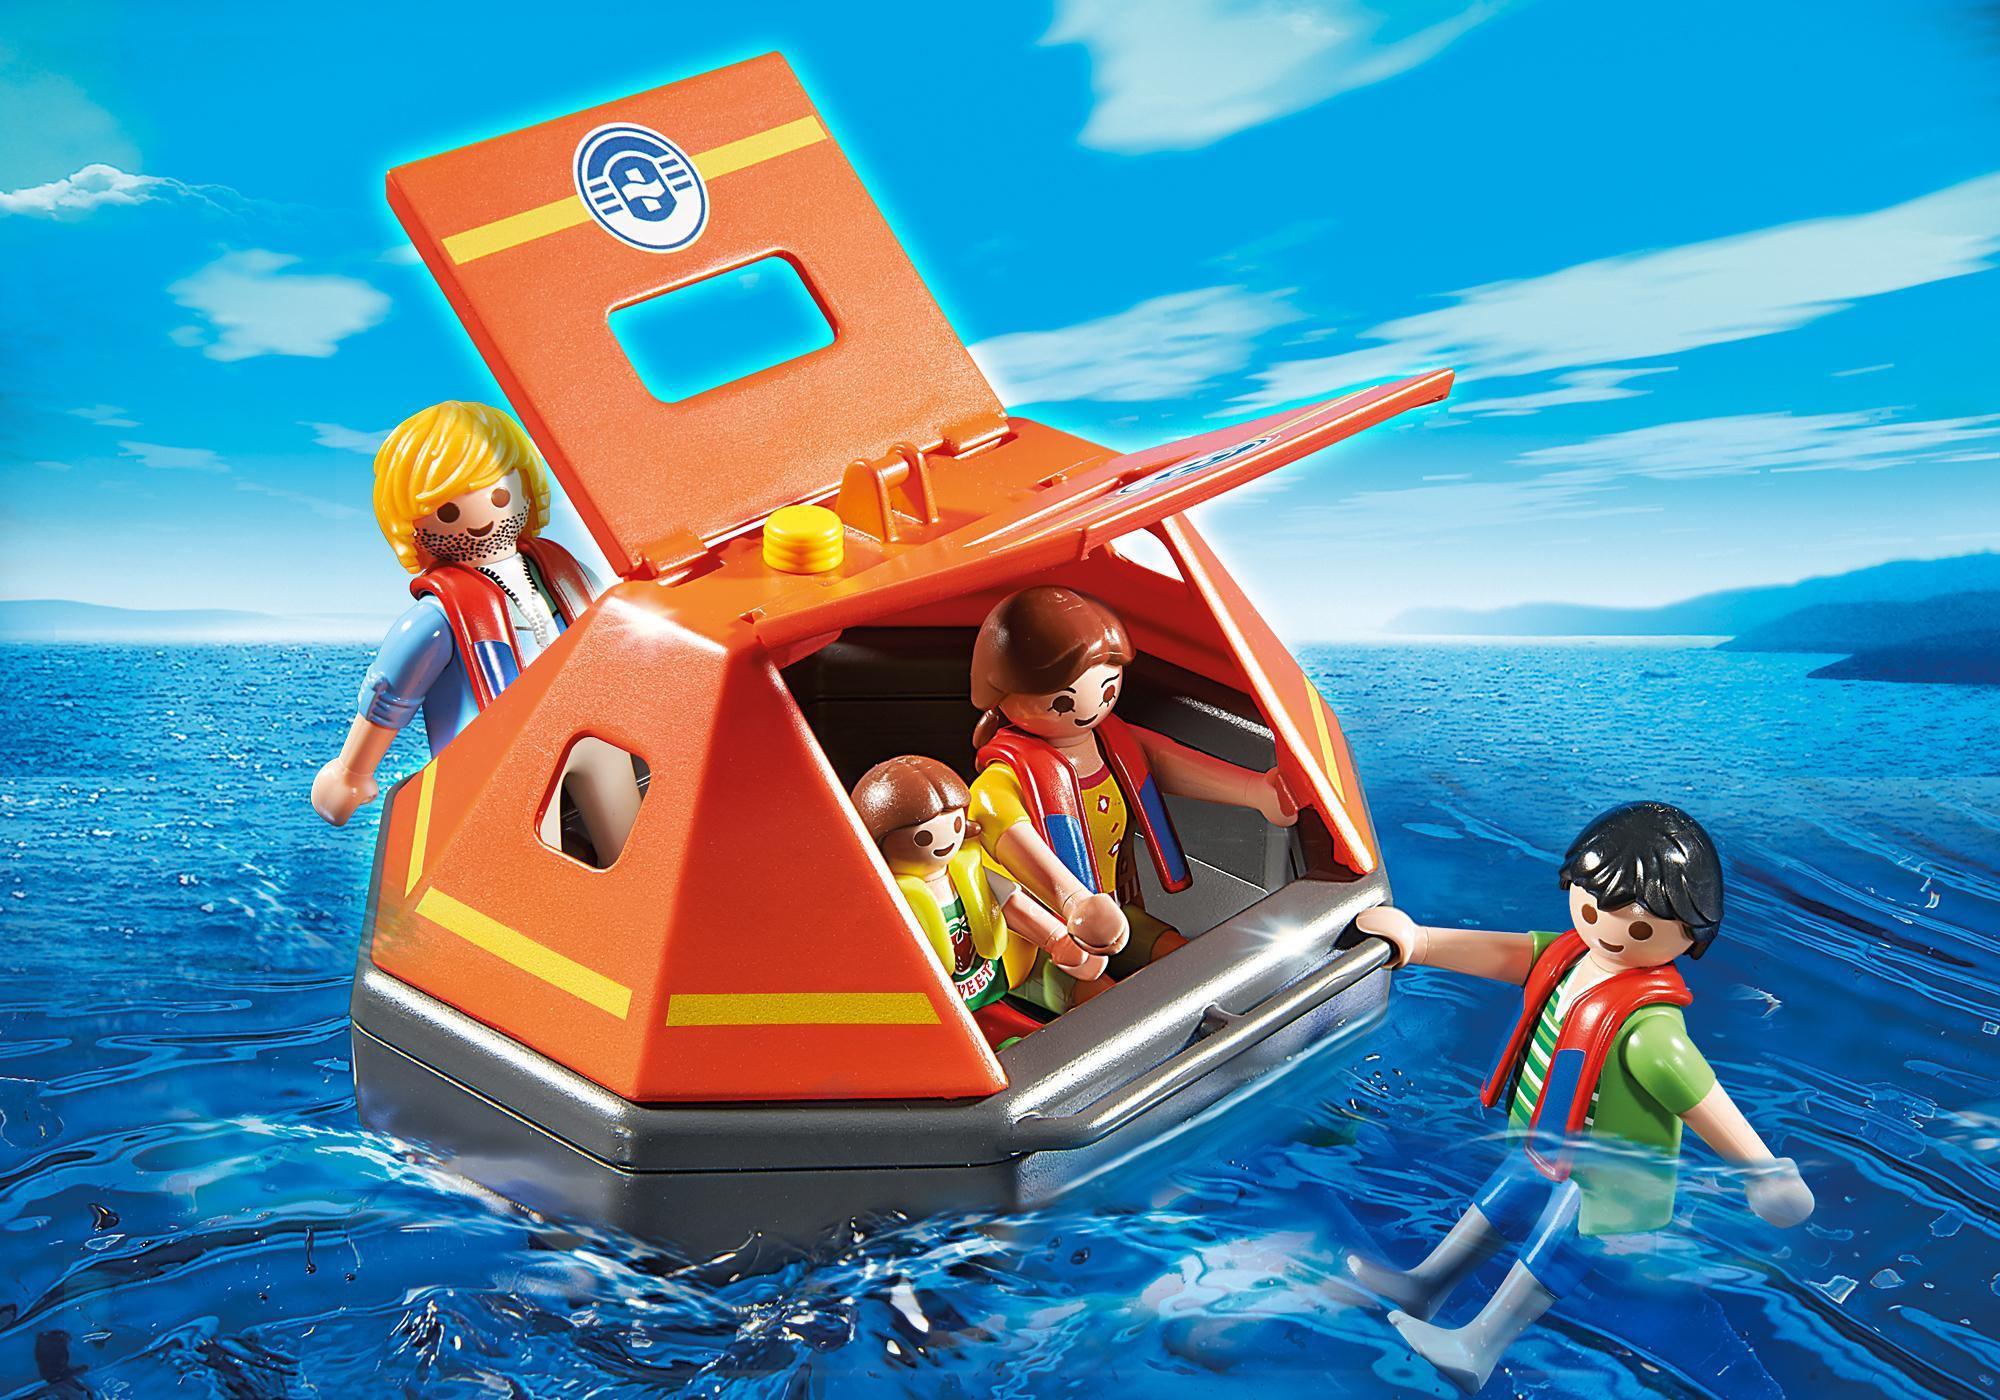 http://media.playmobil.com/i/playmobil/5545_product_detail/Rettungsinsel